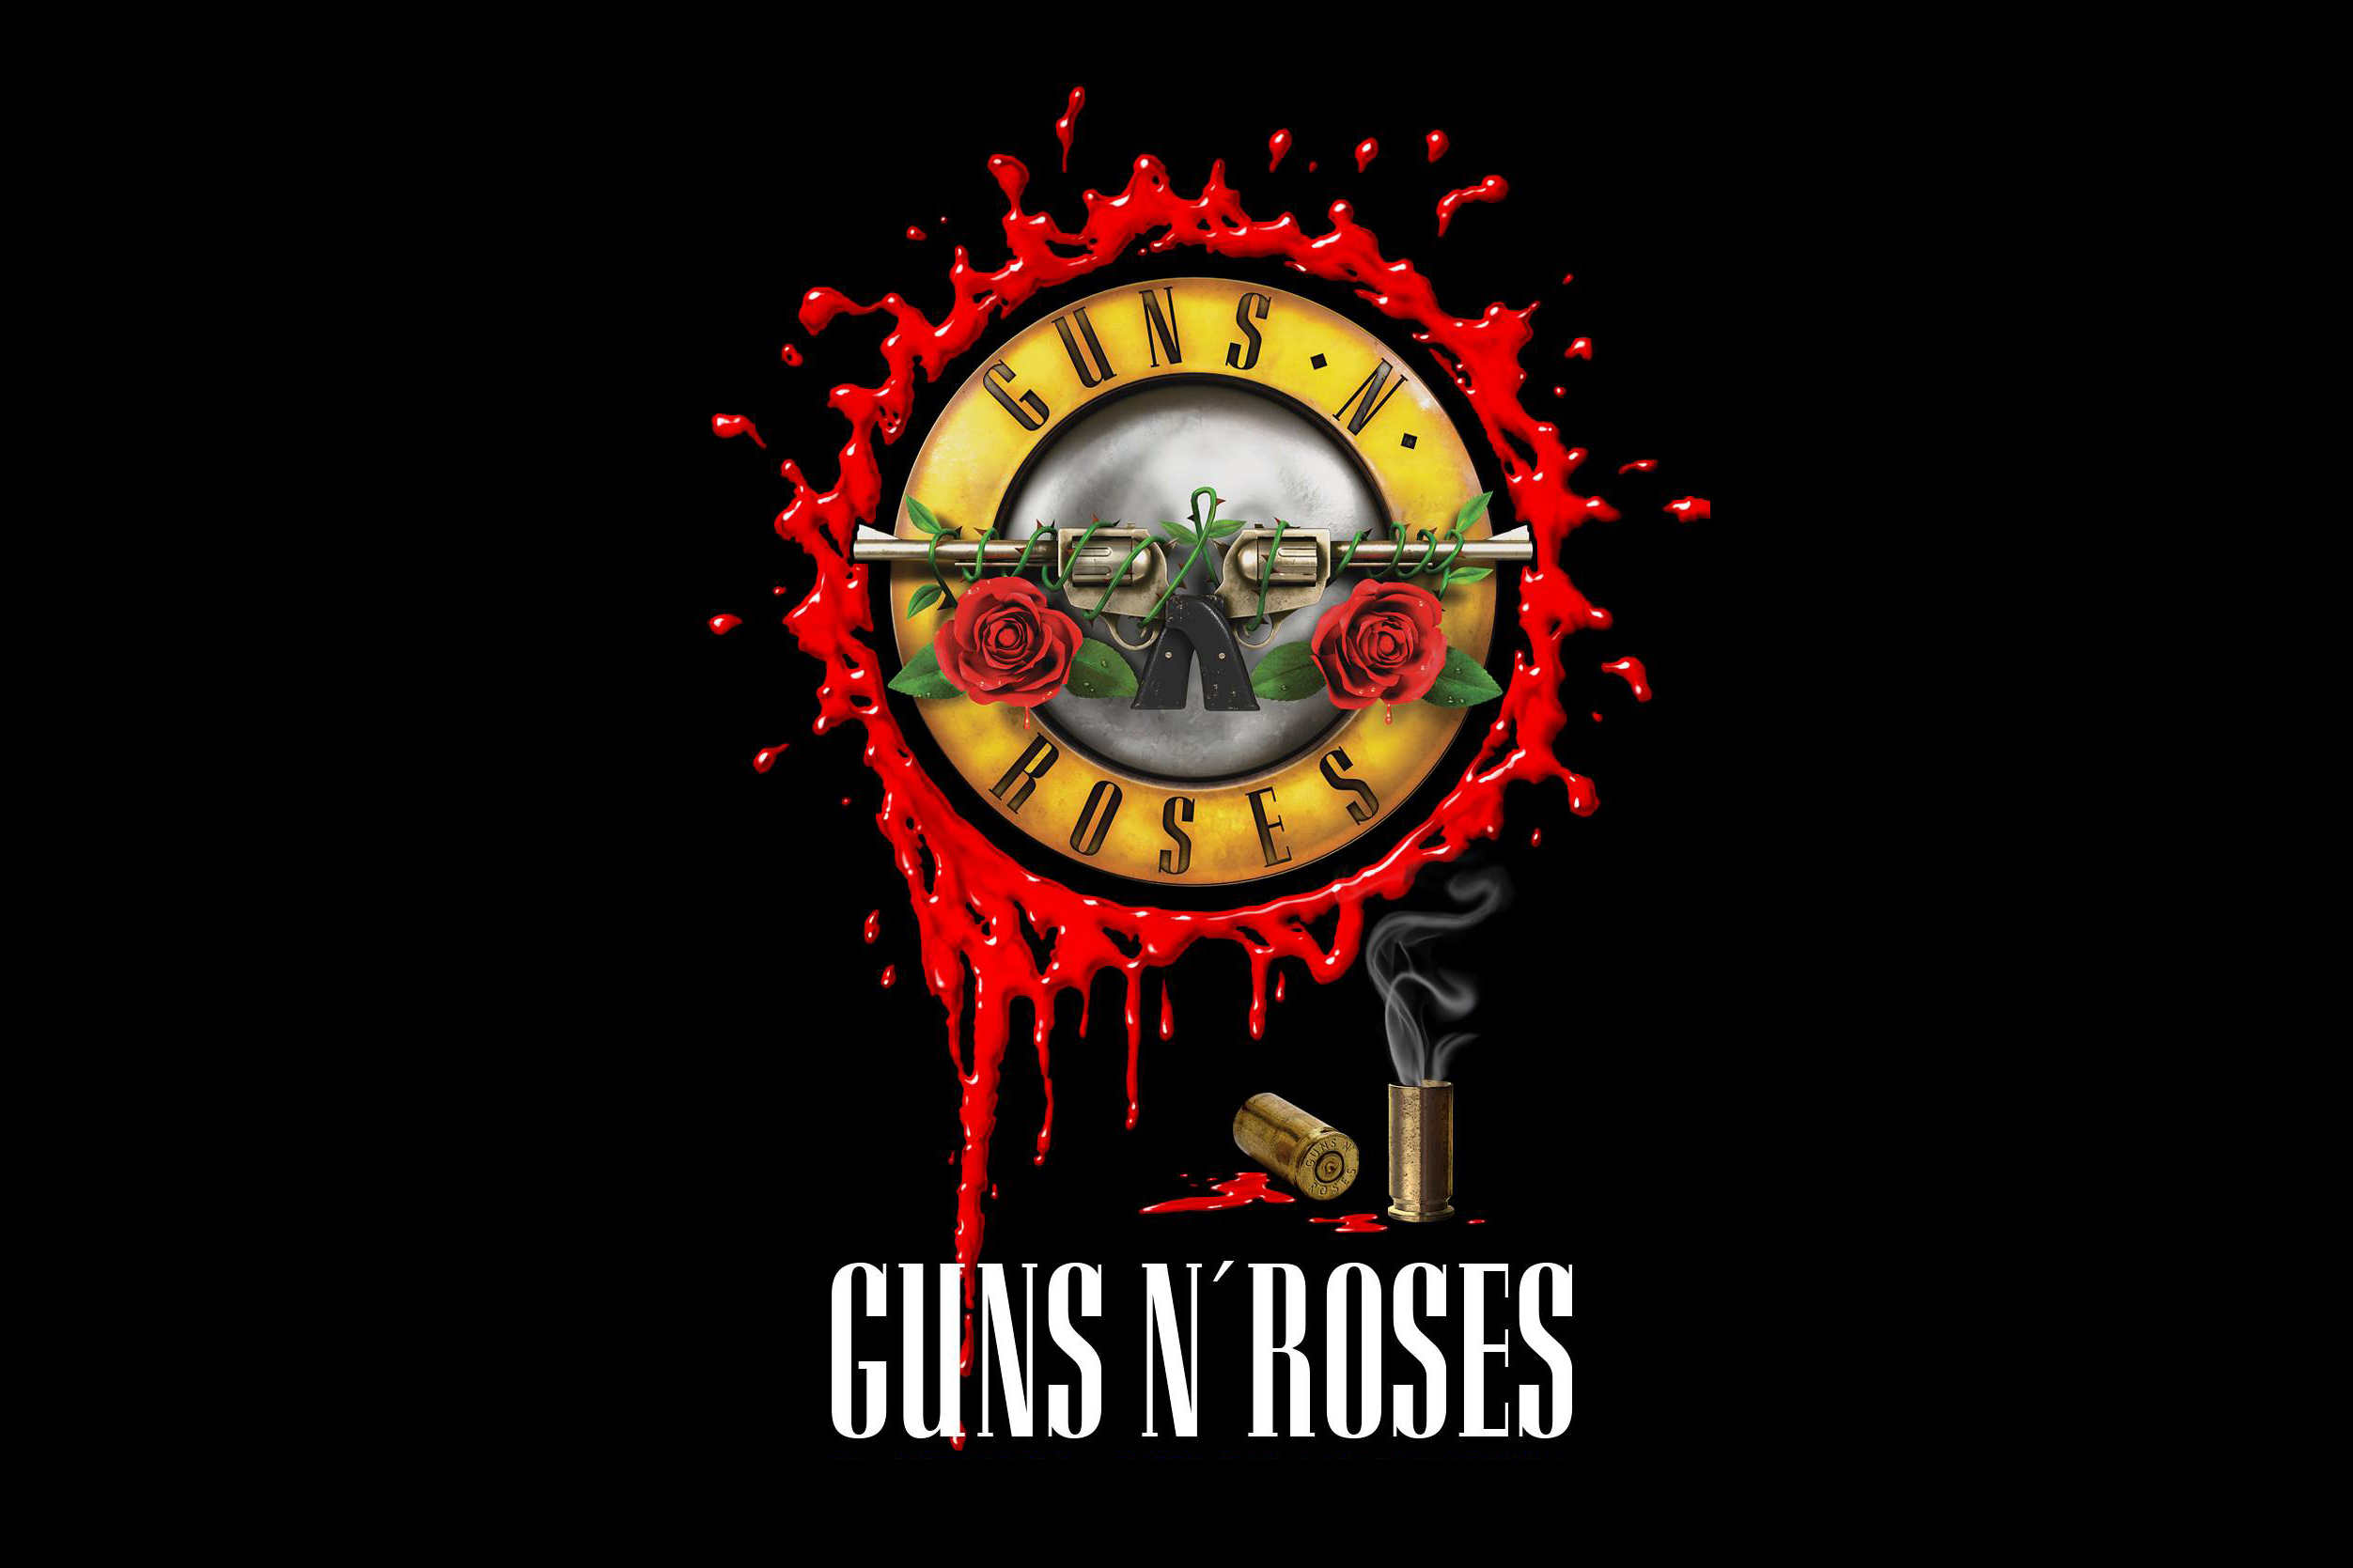 Guns n roses adds new shows for not in this lifetime tour in 2017 13731004101543951533280691063961604907715242o altavistaventures Images